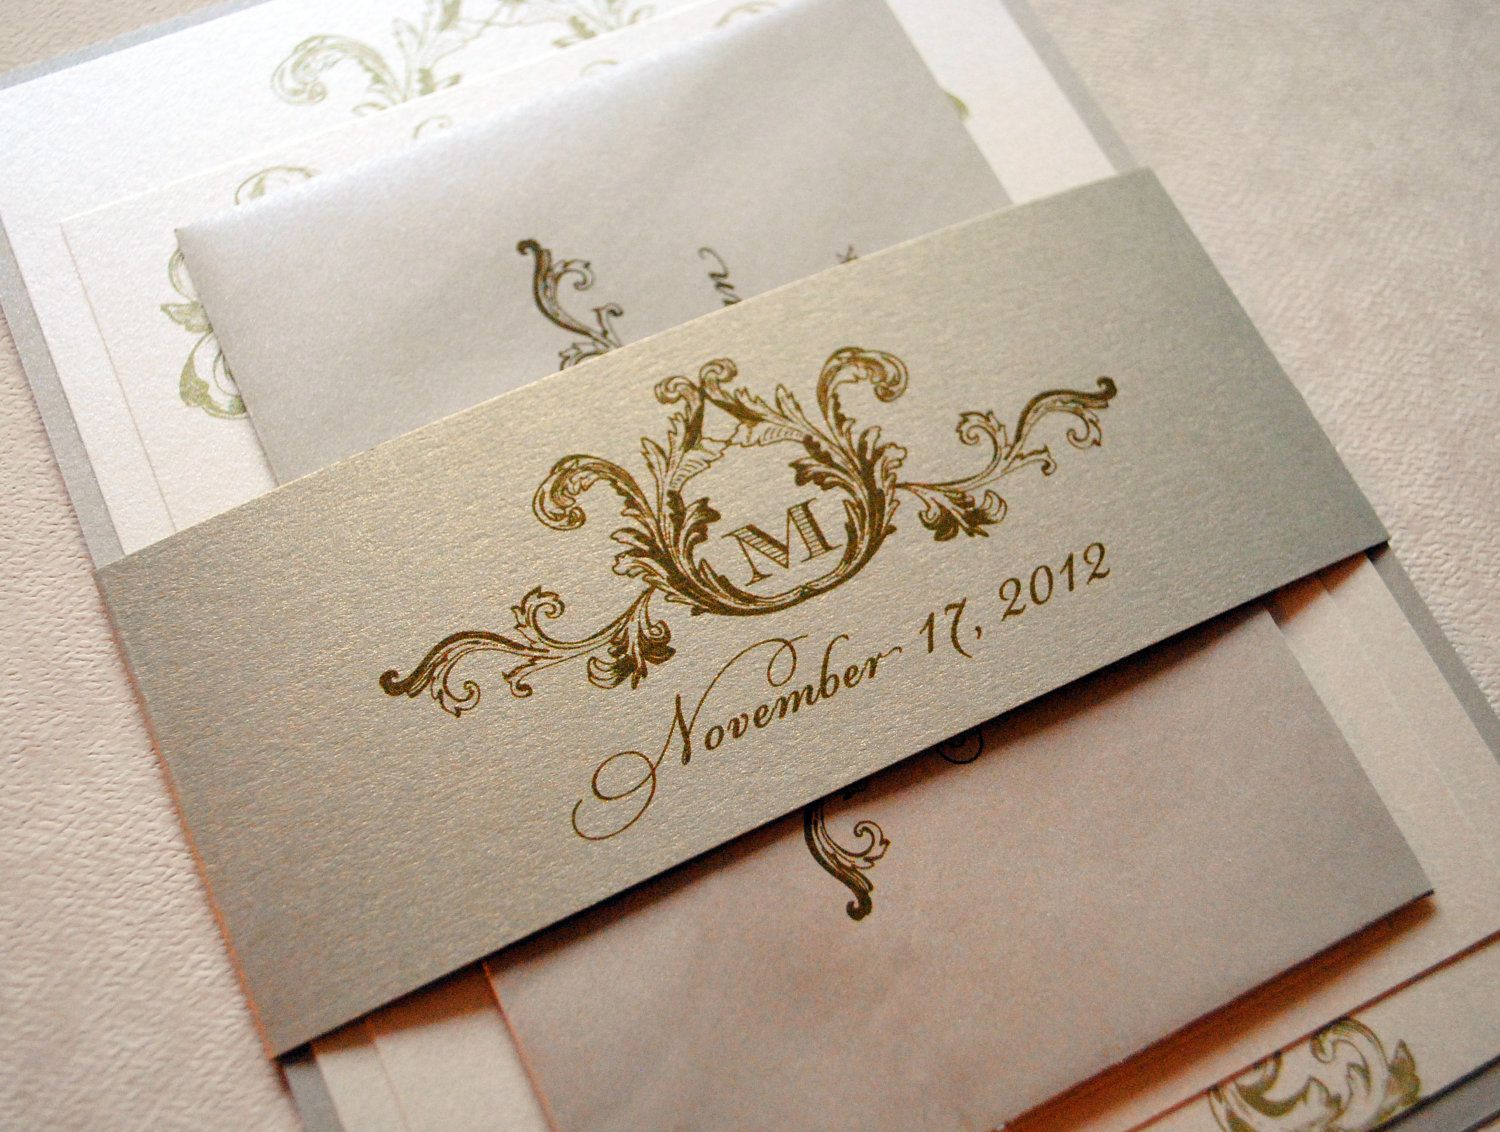 wedding invitations, ivory wedding invitation, vintage wedding, Wedding invitations